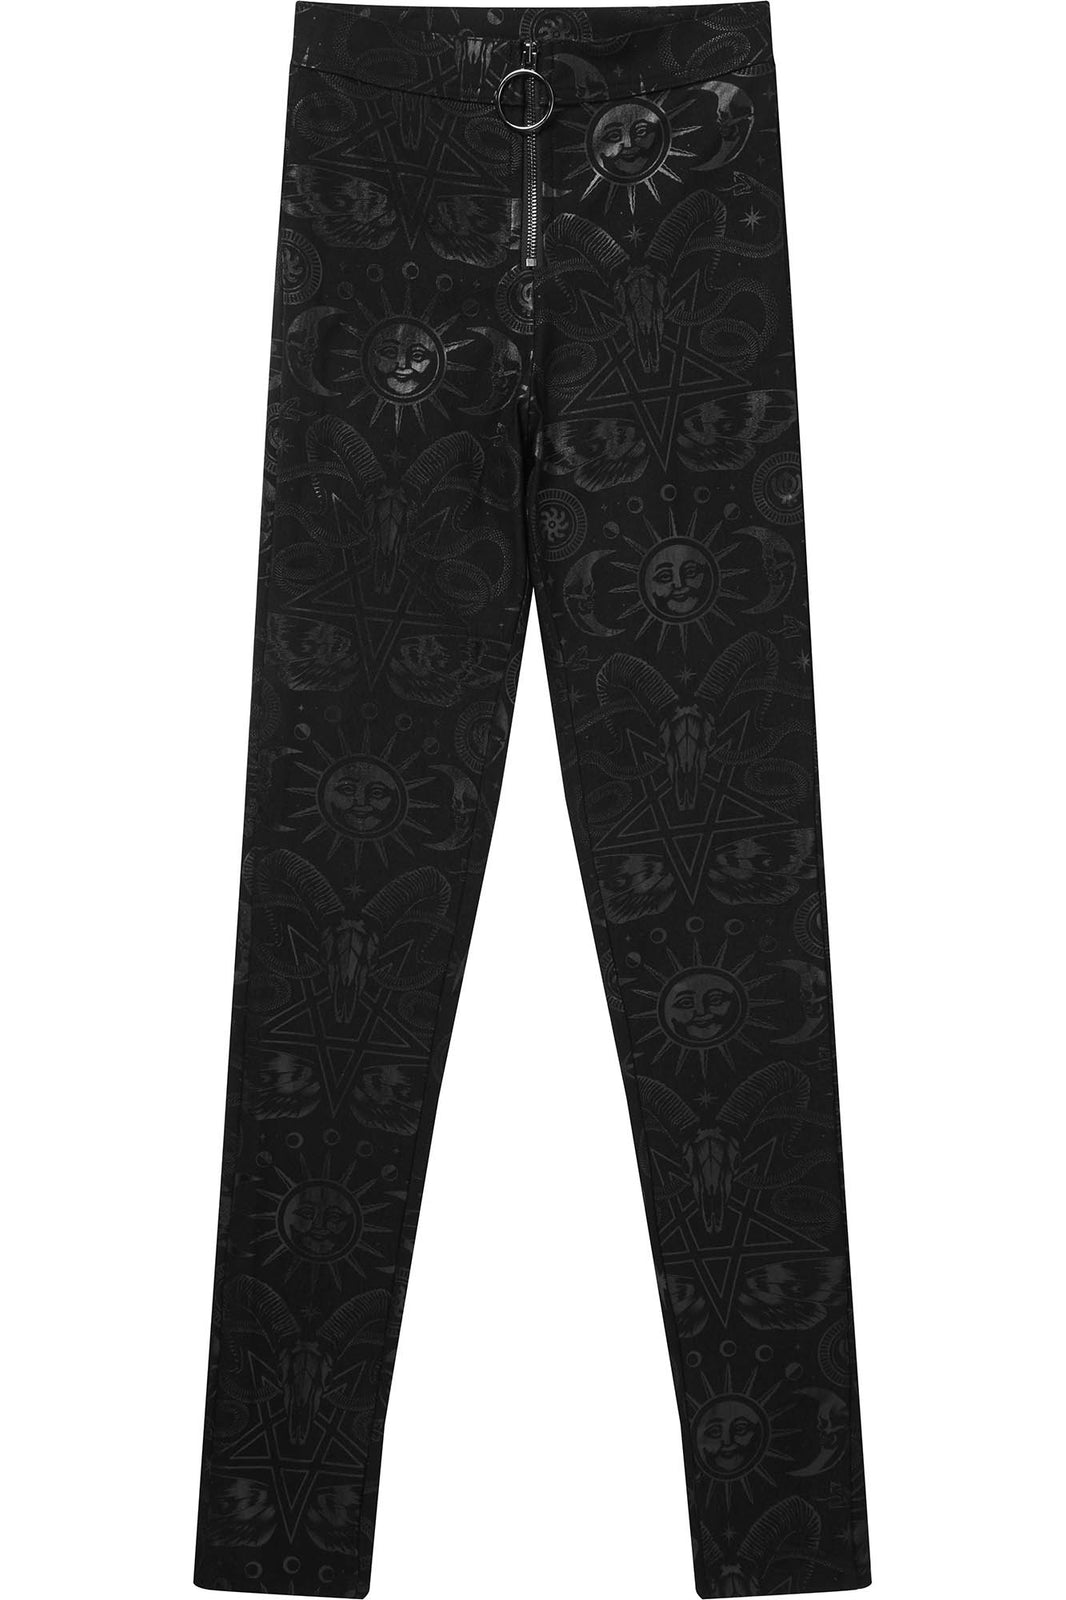 Temple High Waist Trousers